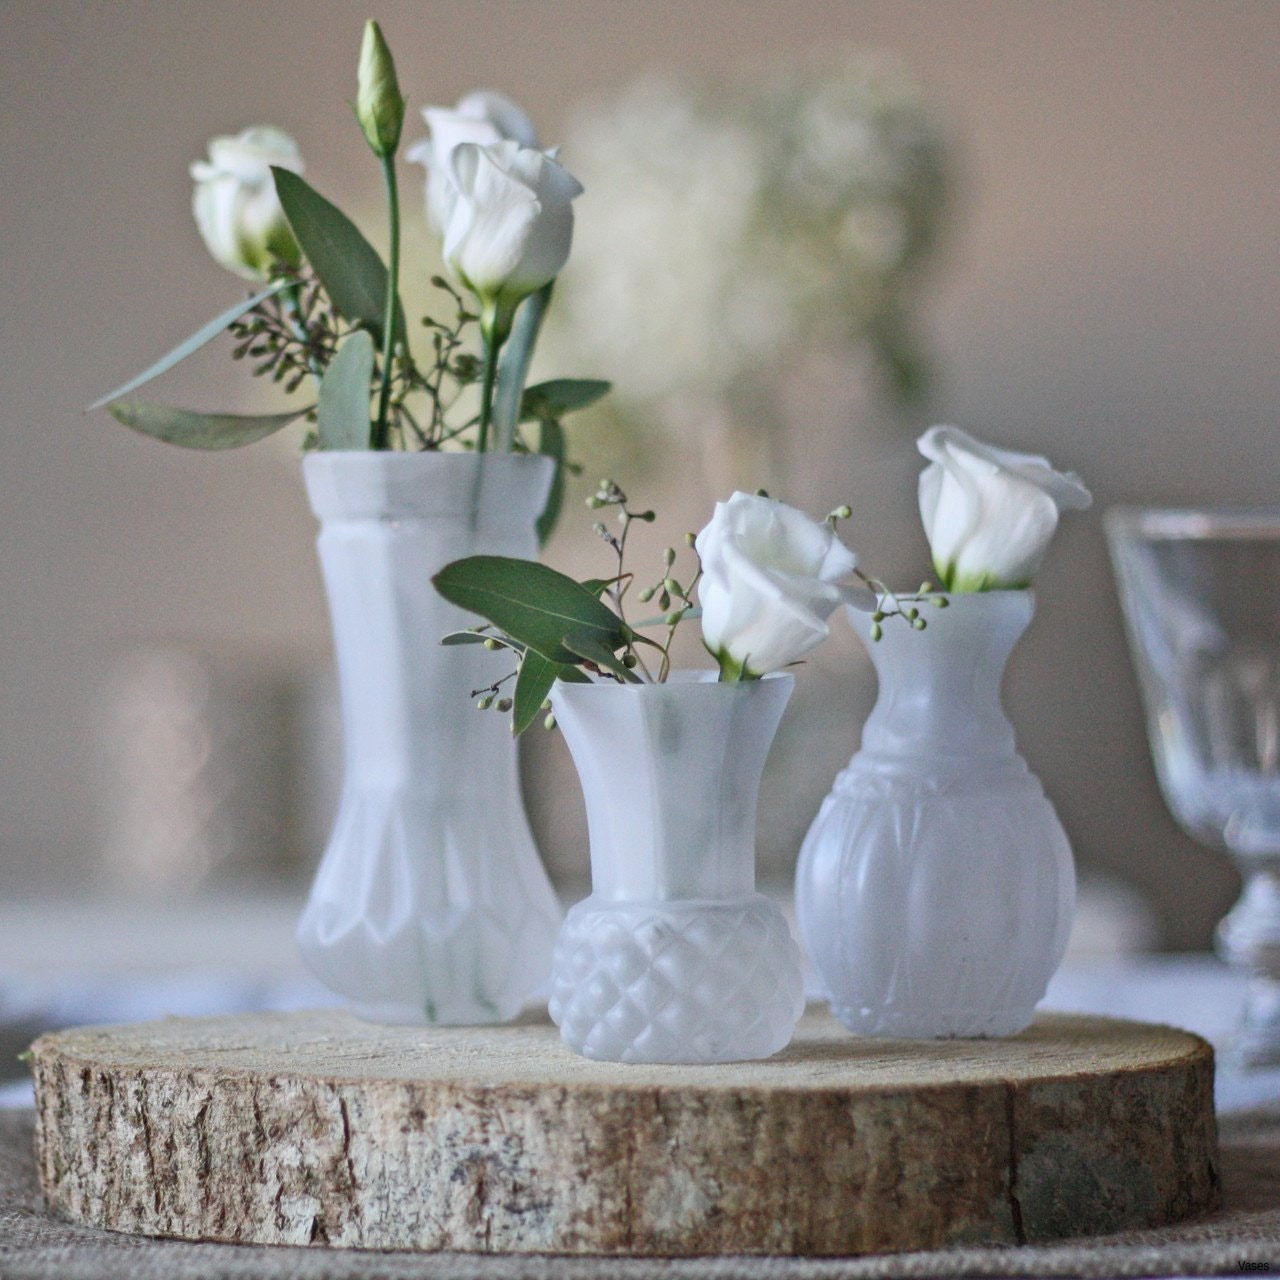 centerpiece vases with flowers of awesome jar flower 1h vases bud wedding vase centerpiece idea i 0d pertaining to awesome jar flower 1h vases bud wedding vase centerpiece idea i 0d white of awesome jar